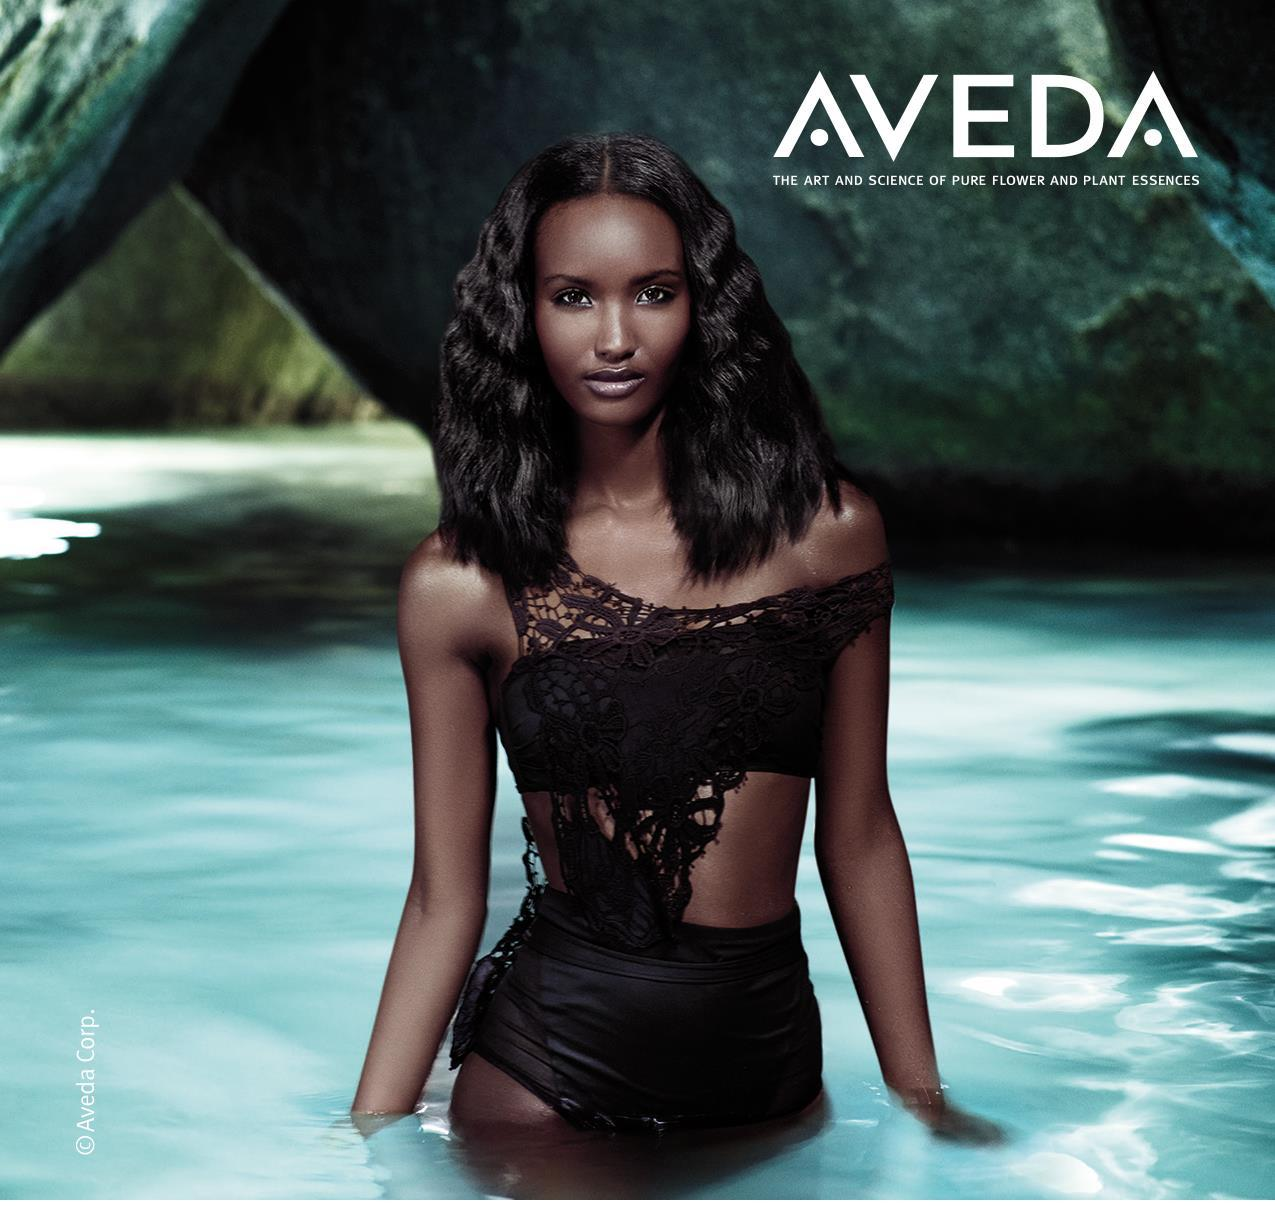 - We have all experienced a little sunburn in our lives. Just as sun damages the skin, the UVA and UVB rays can damage the hair too. Exposure to sun, chlorine and salt can oxidize haircolor and cause severe dryness and breakage. Join AVEDA artist, Amber S. and dive into overexposure: how it happens & tools and techniques for great summer hair.